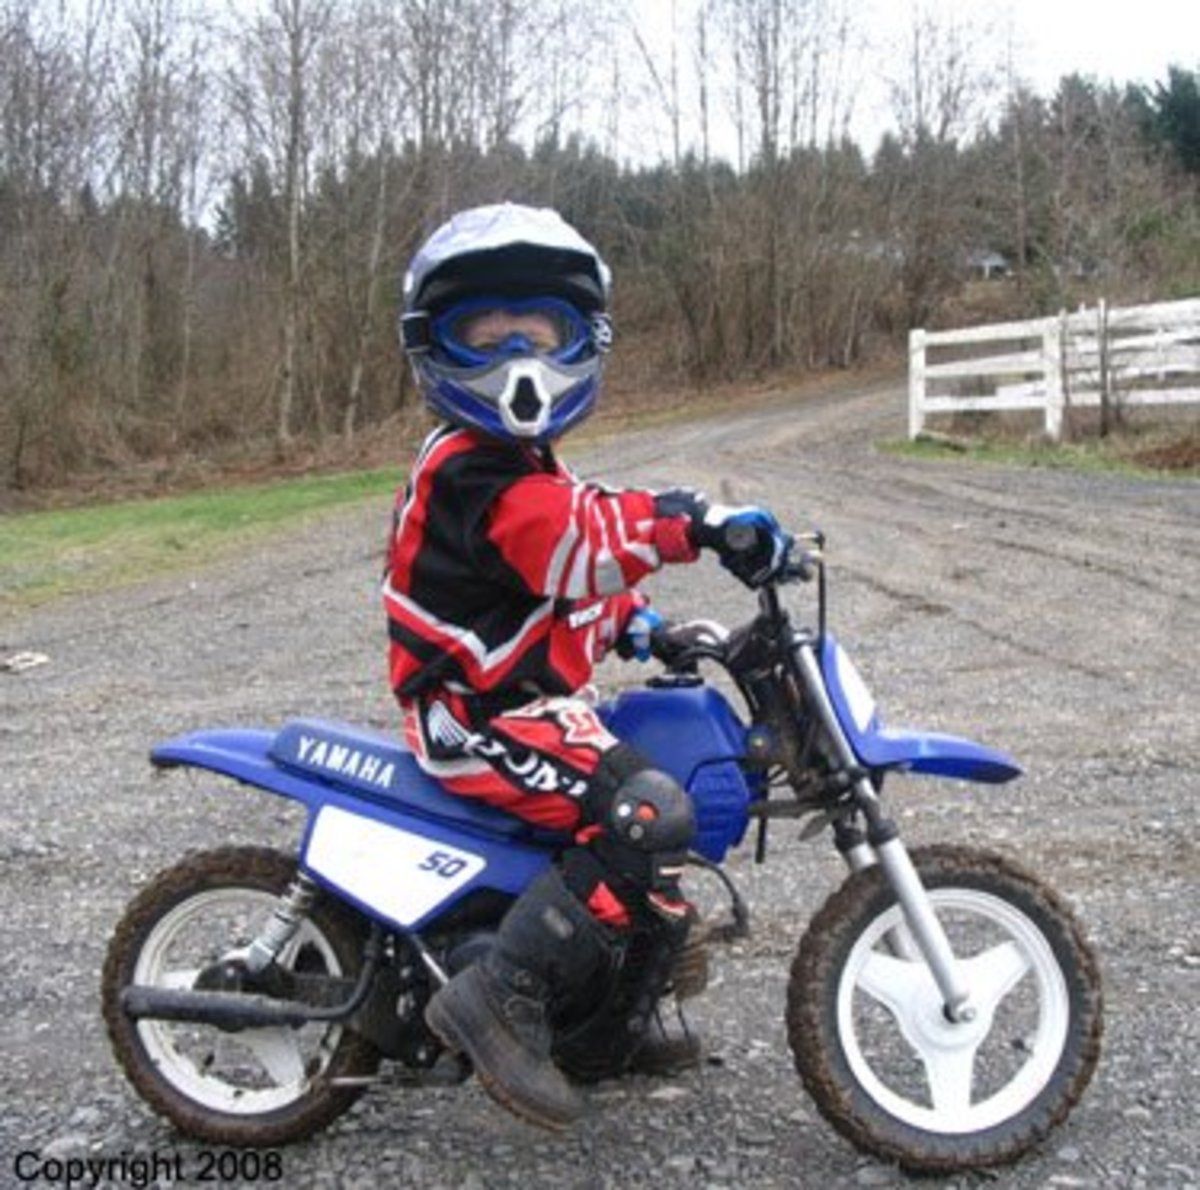 Yamaha Near Me >> How to Get Your Kid Started Racing Dirt Bikes | AxleAddict